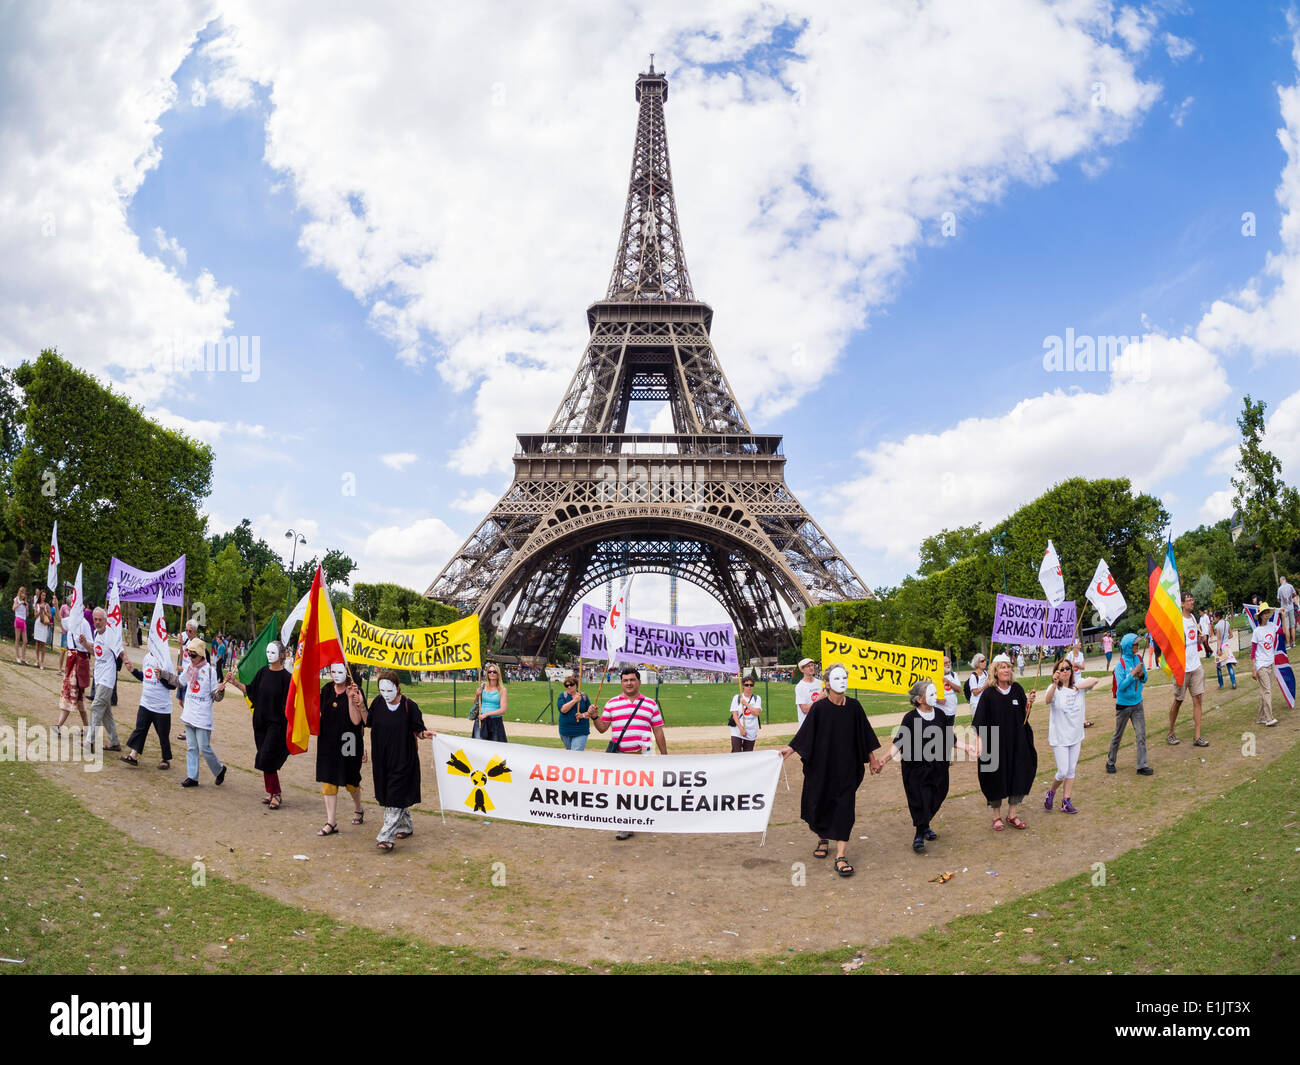 Peace activists from various countries demonstrate for the abolition of nuclear weapons at the Paris Eiffel Tower. Stock Photo